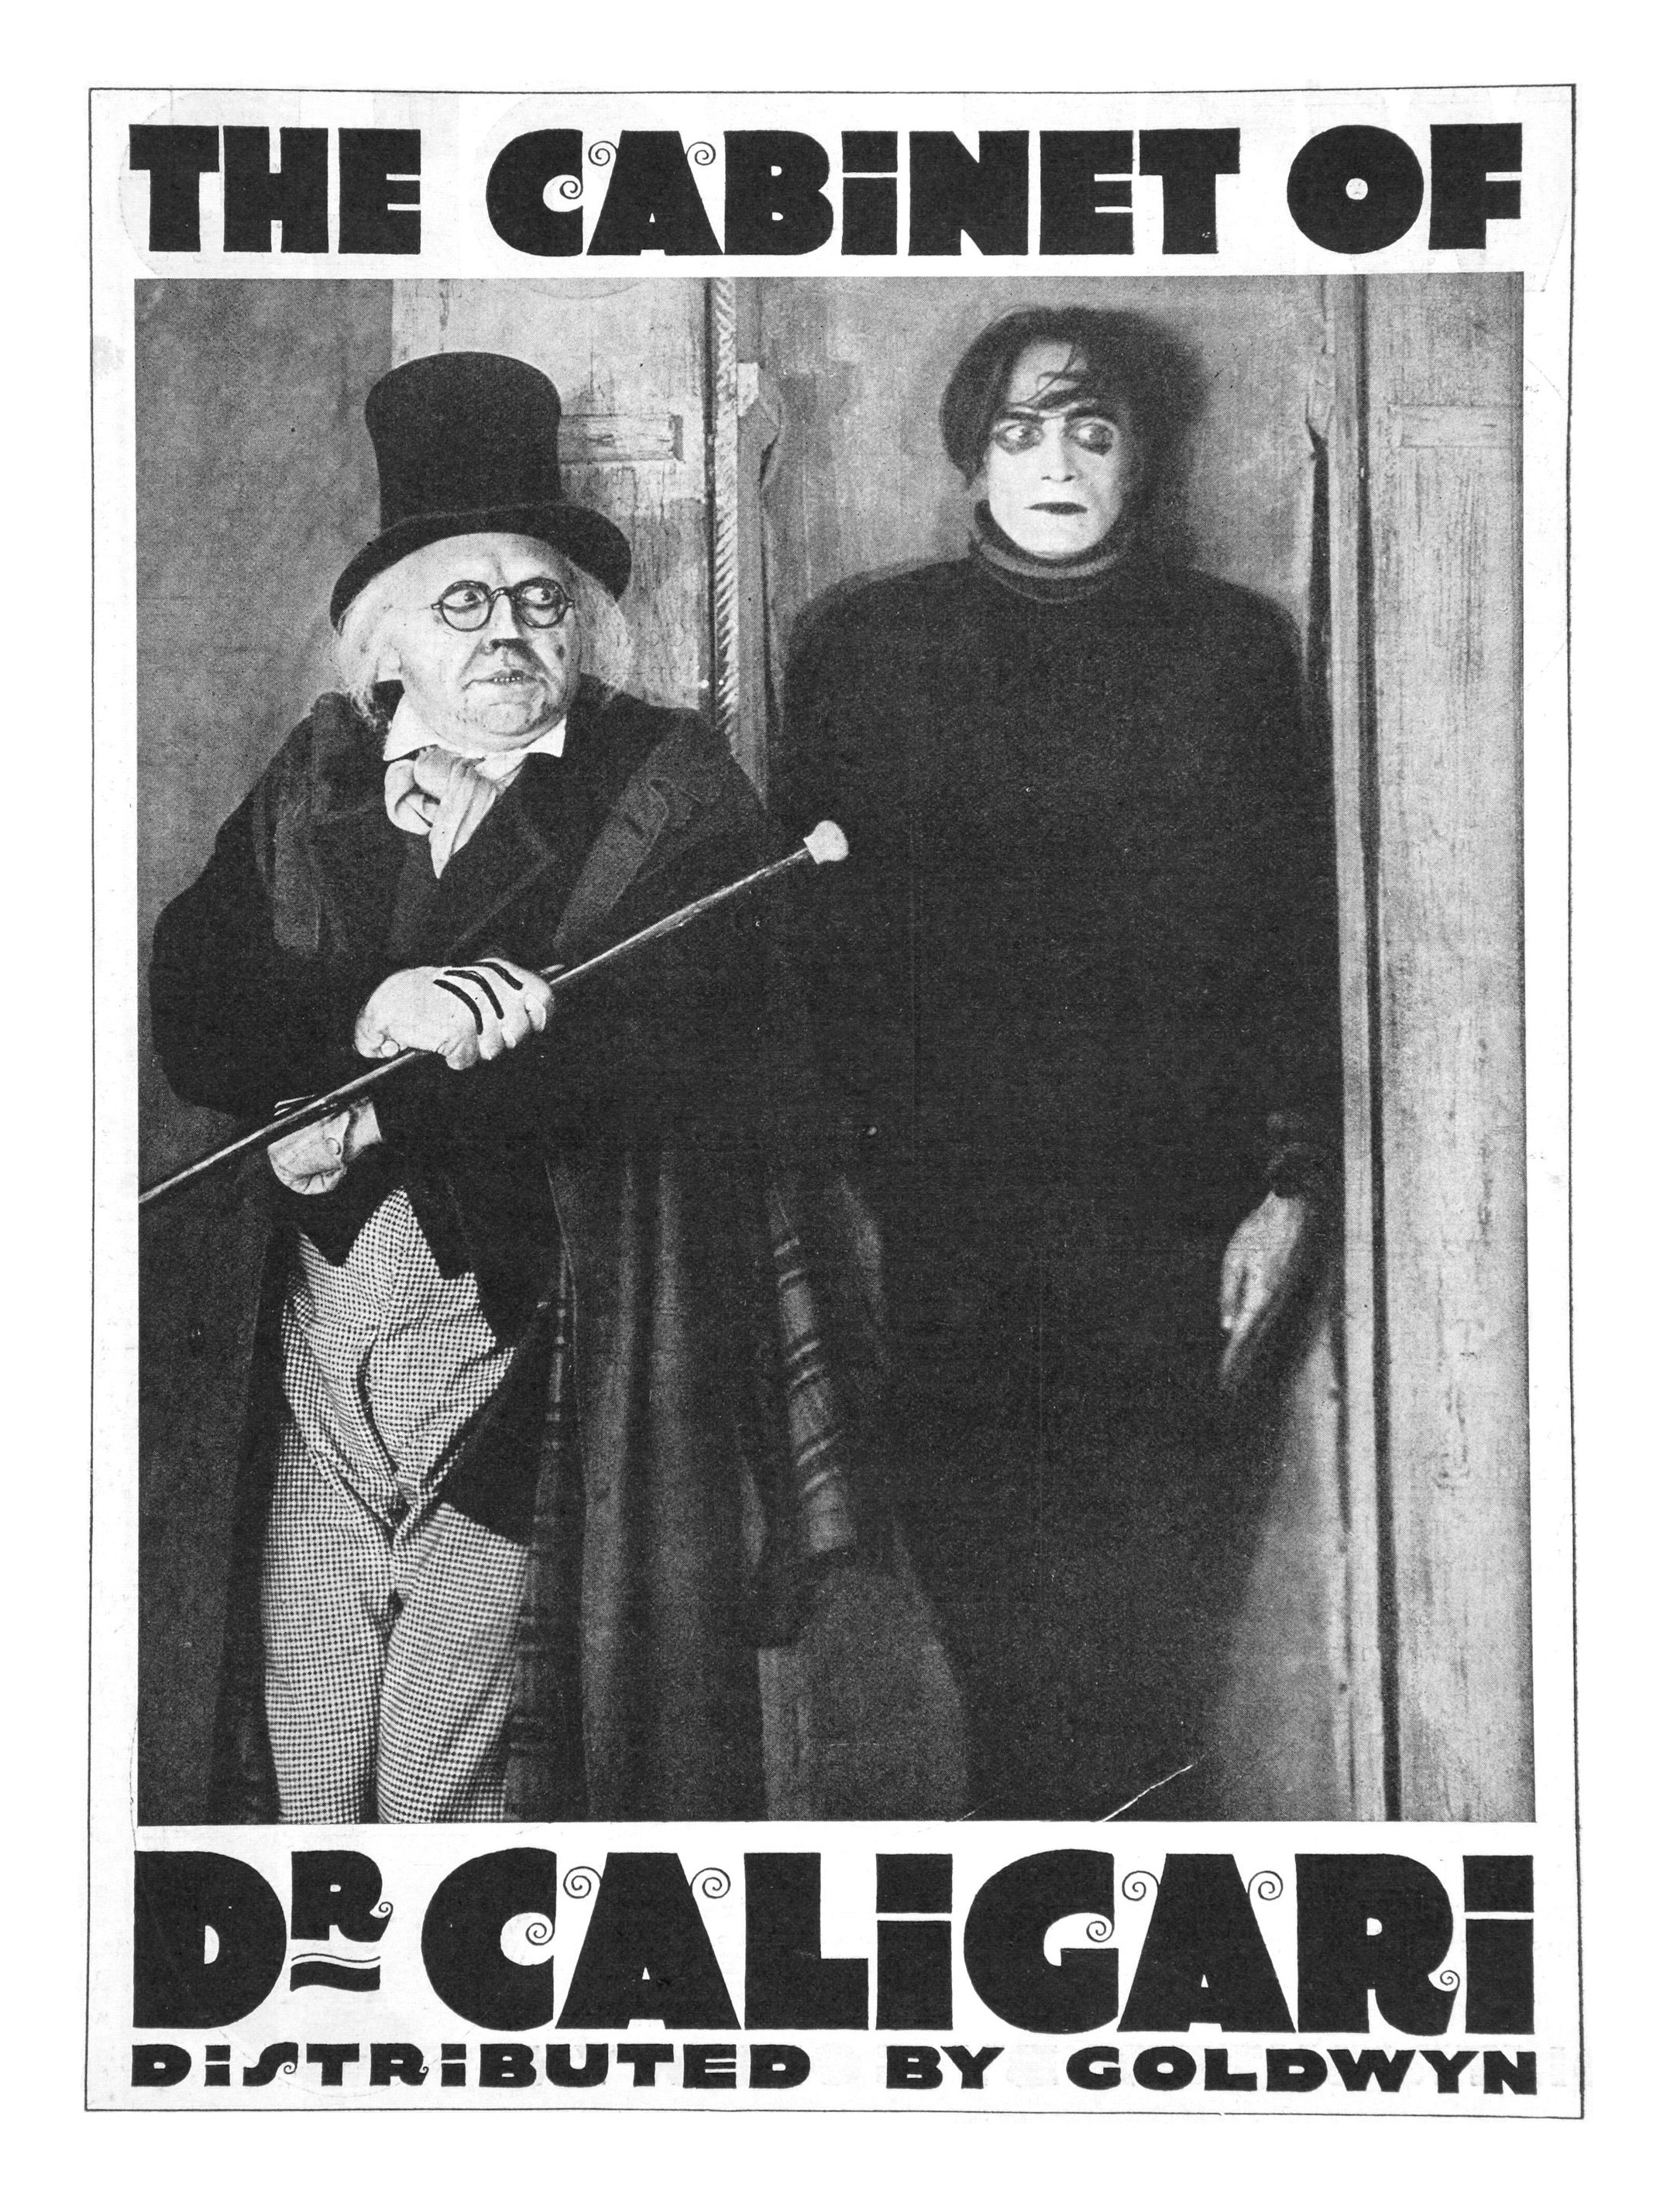 The Cabinet Of Dr. Caligari, Das Cabinet De..